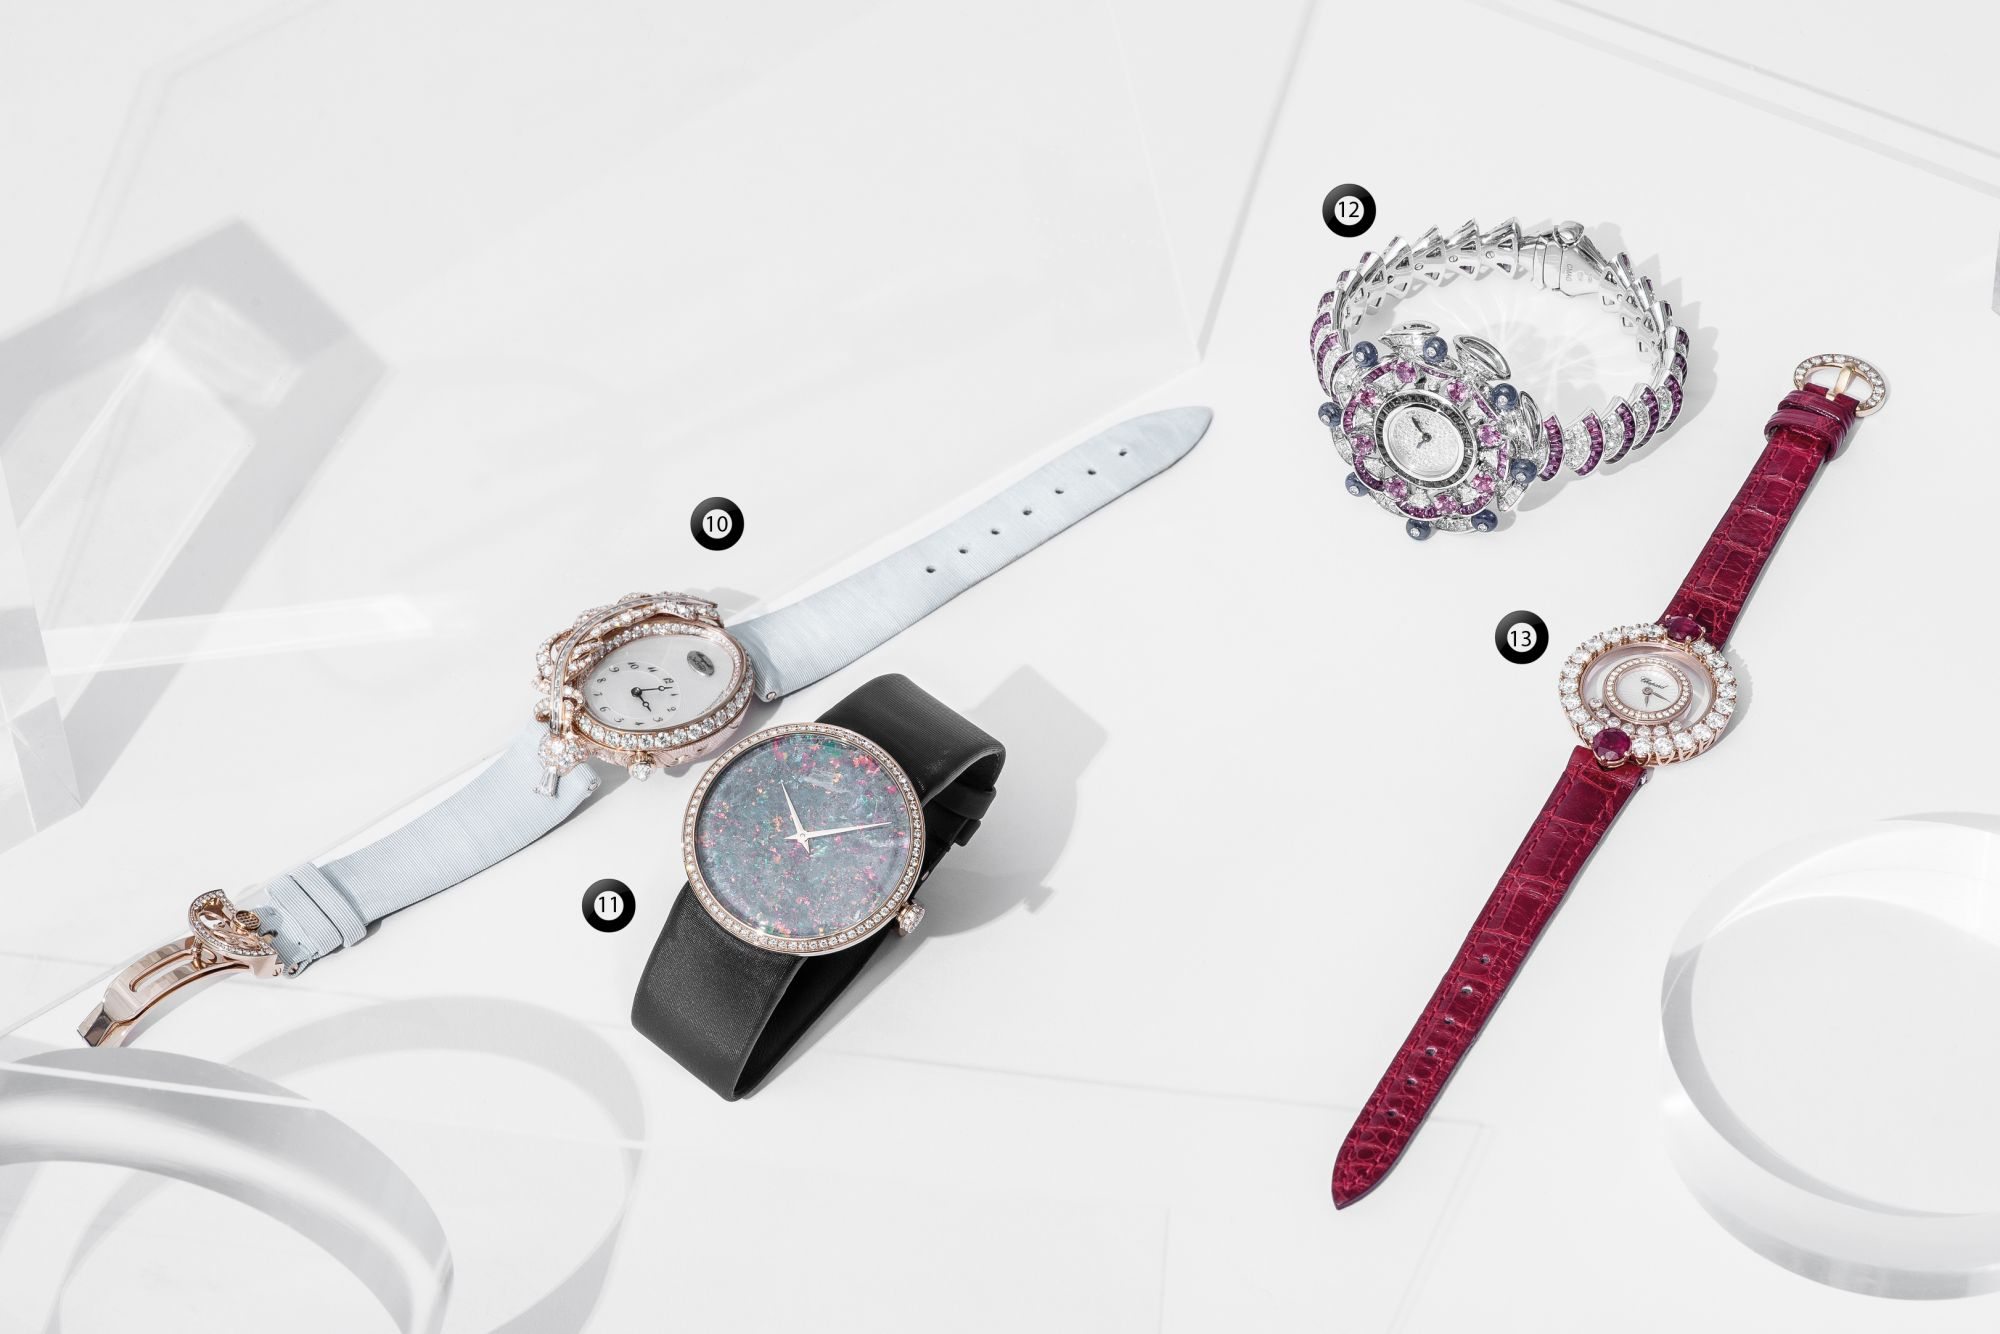 by to fun ready styling jord with accessories spring modnitsa watches feature get forward new